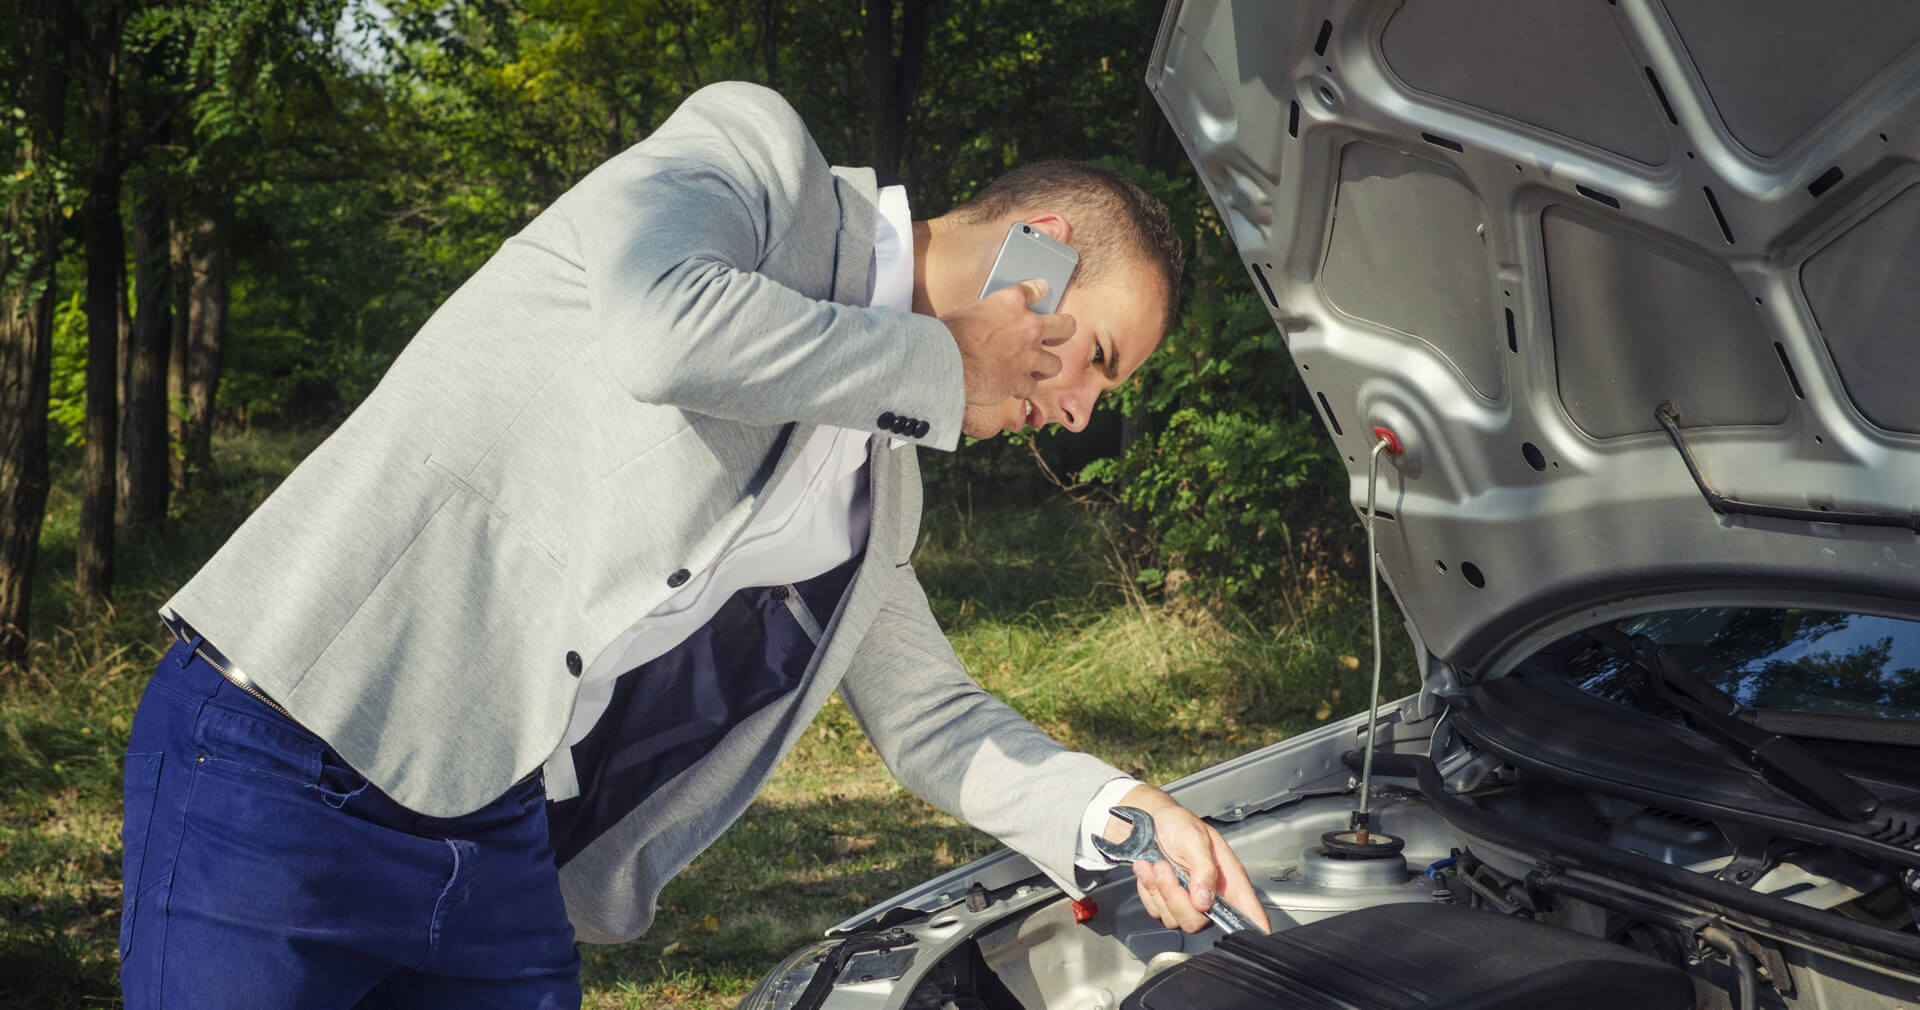 https://autolab.com.co/wp-content/uploads/2021/02/Copia-de-man-standing-by-the-open-hood-making-phone-call-and-trying-to-fix-the-vehicle.jpg